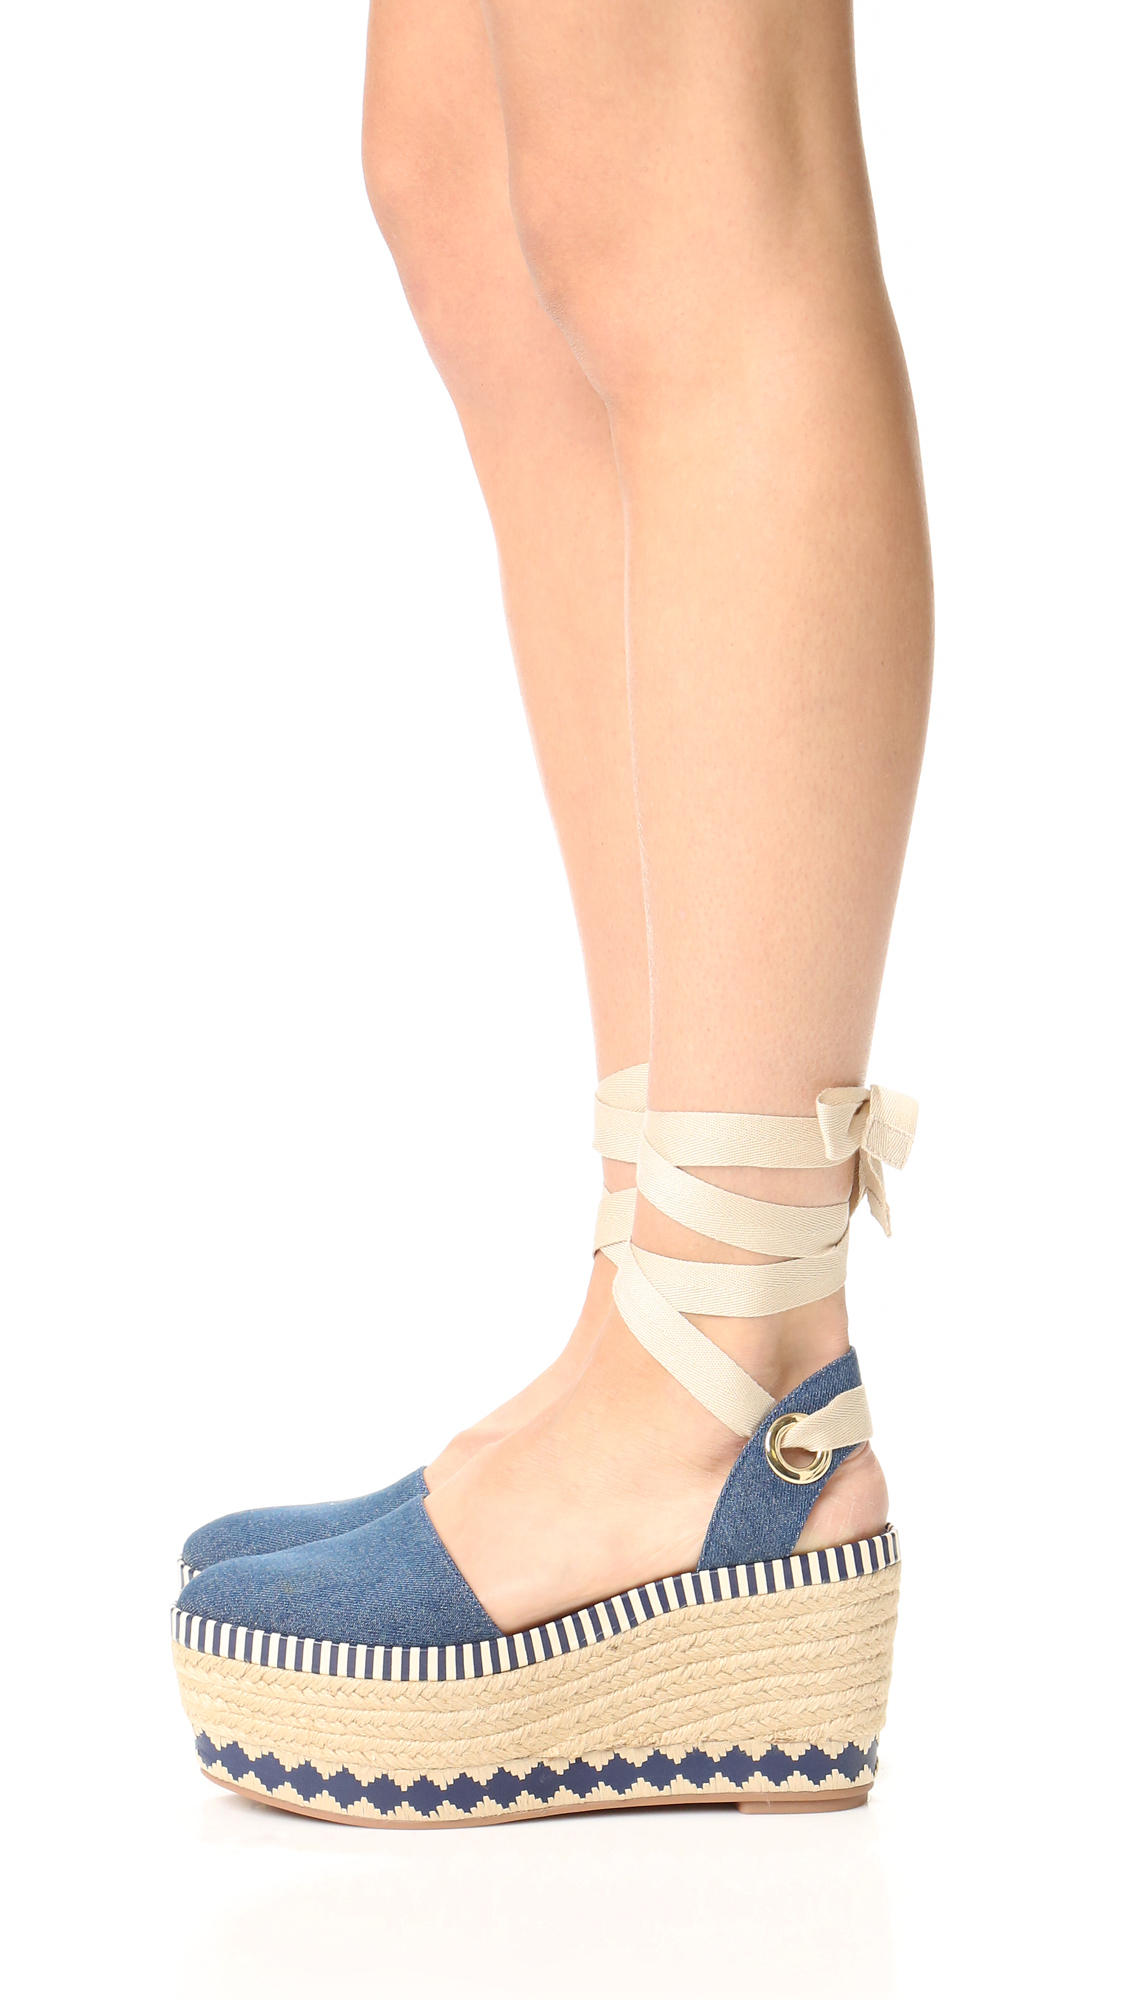 Tory Burch Wrap-Around Espadrille Wedges clearance with paypal a4ZariQWV